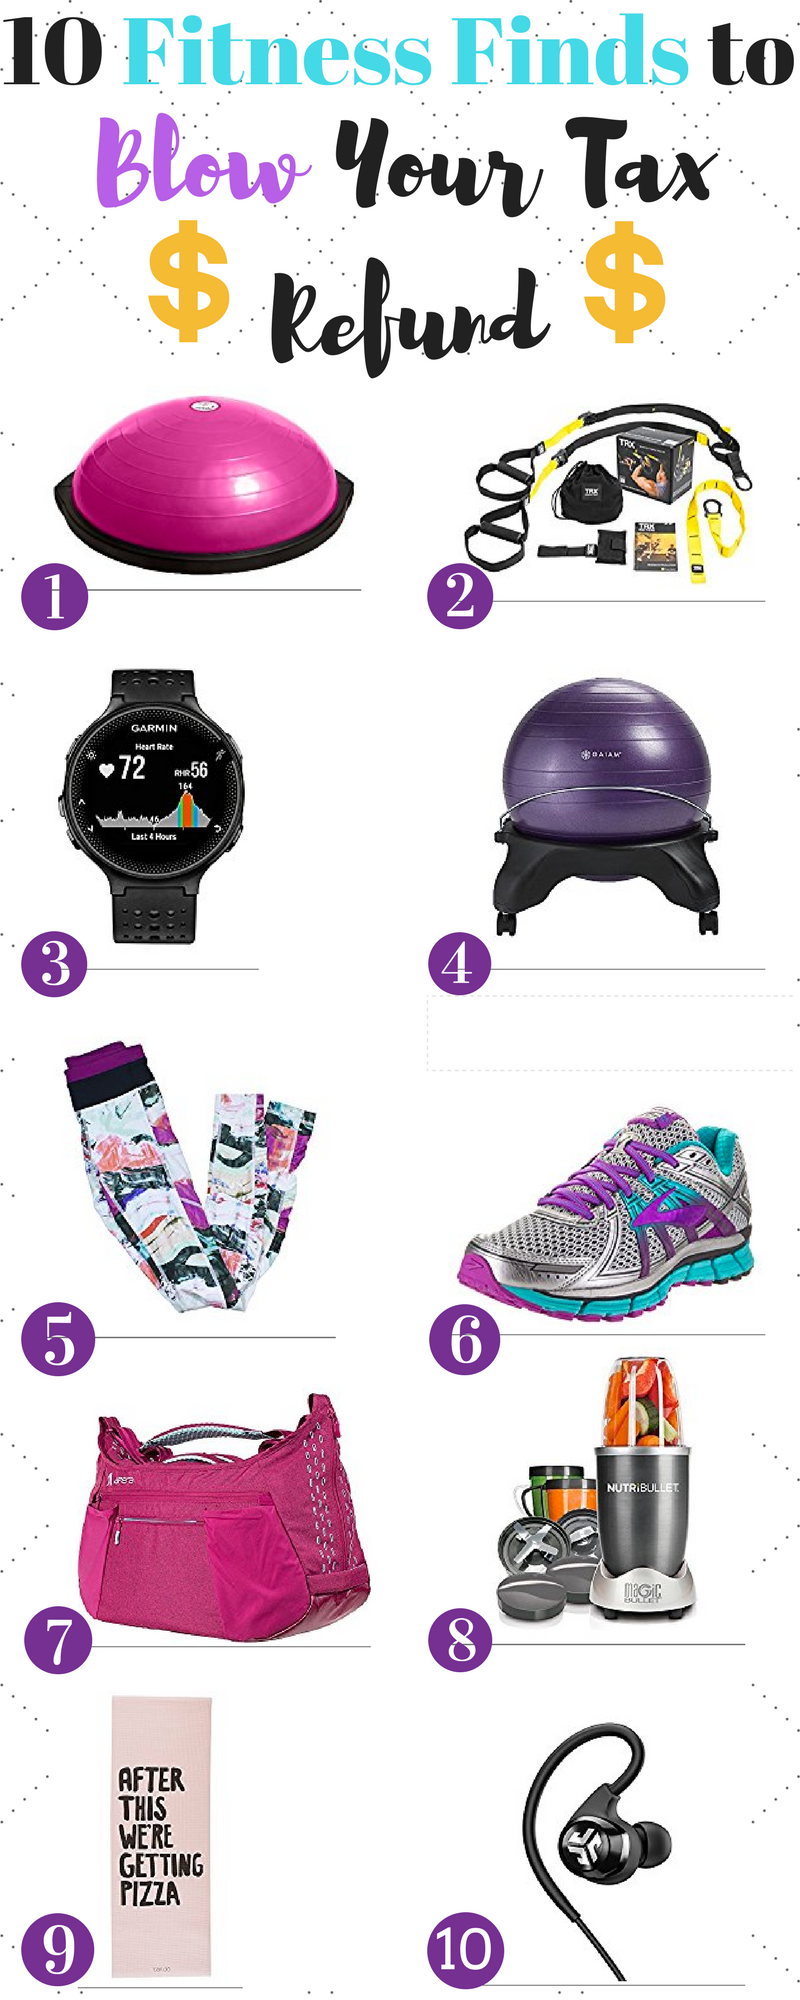 5 Fitness Finds to blow your tex refund (1).png